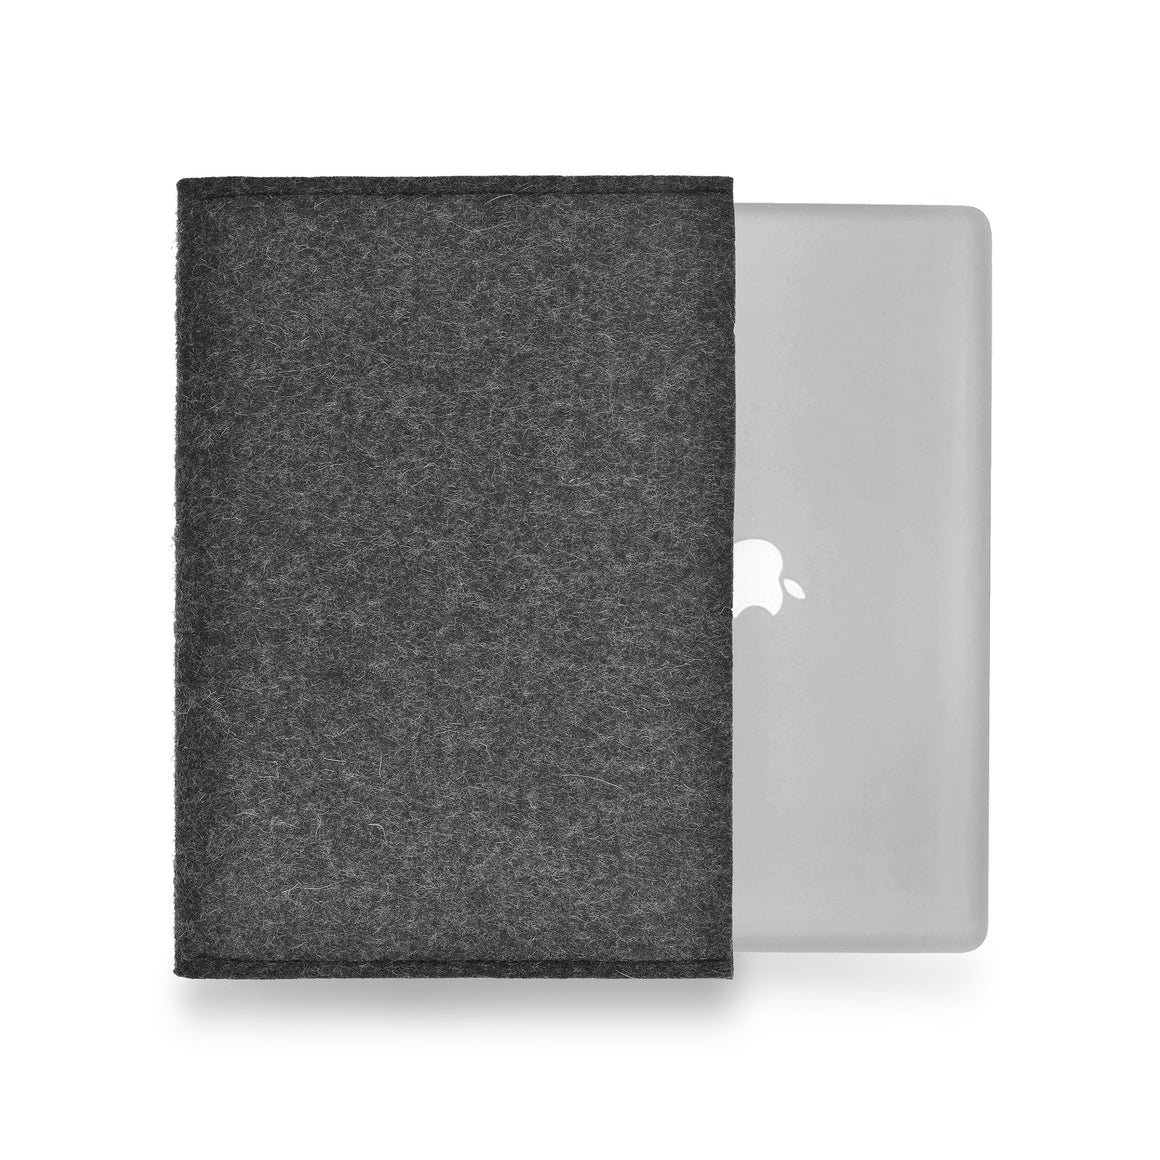 MacBook Air 11 inch Wool Felt Charcoal Landscape - Wrappers UK